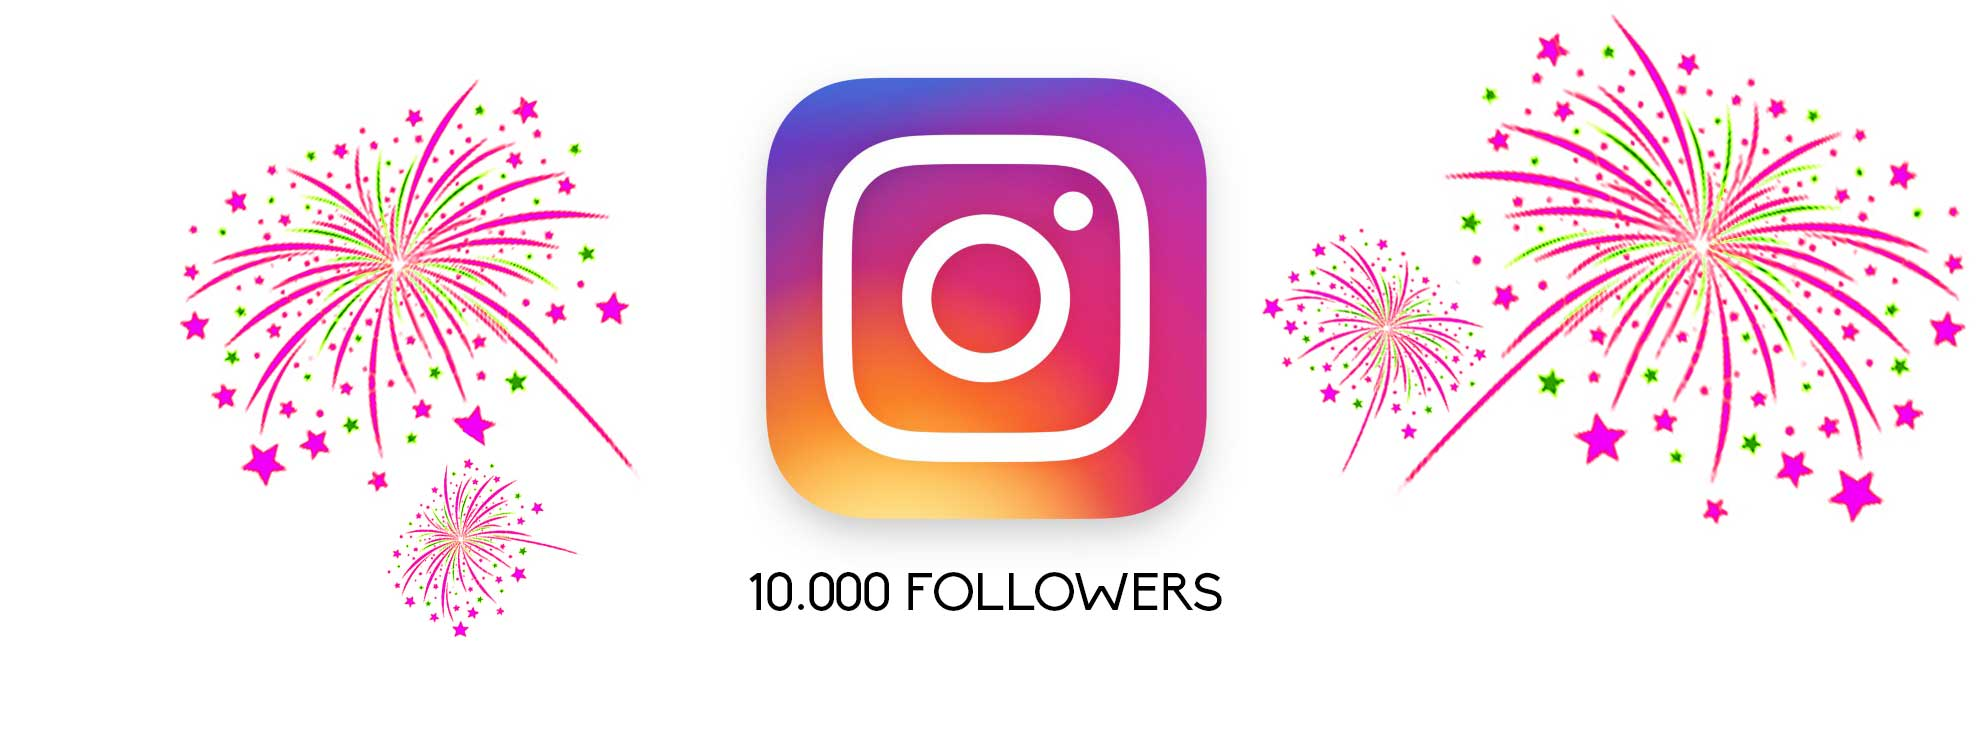 Instagram 10.000 followers for slyde handboards